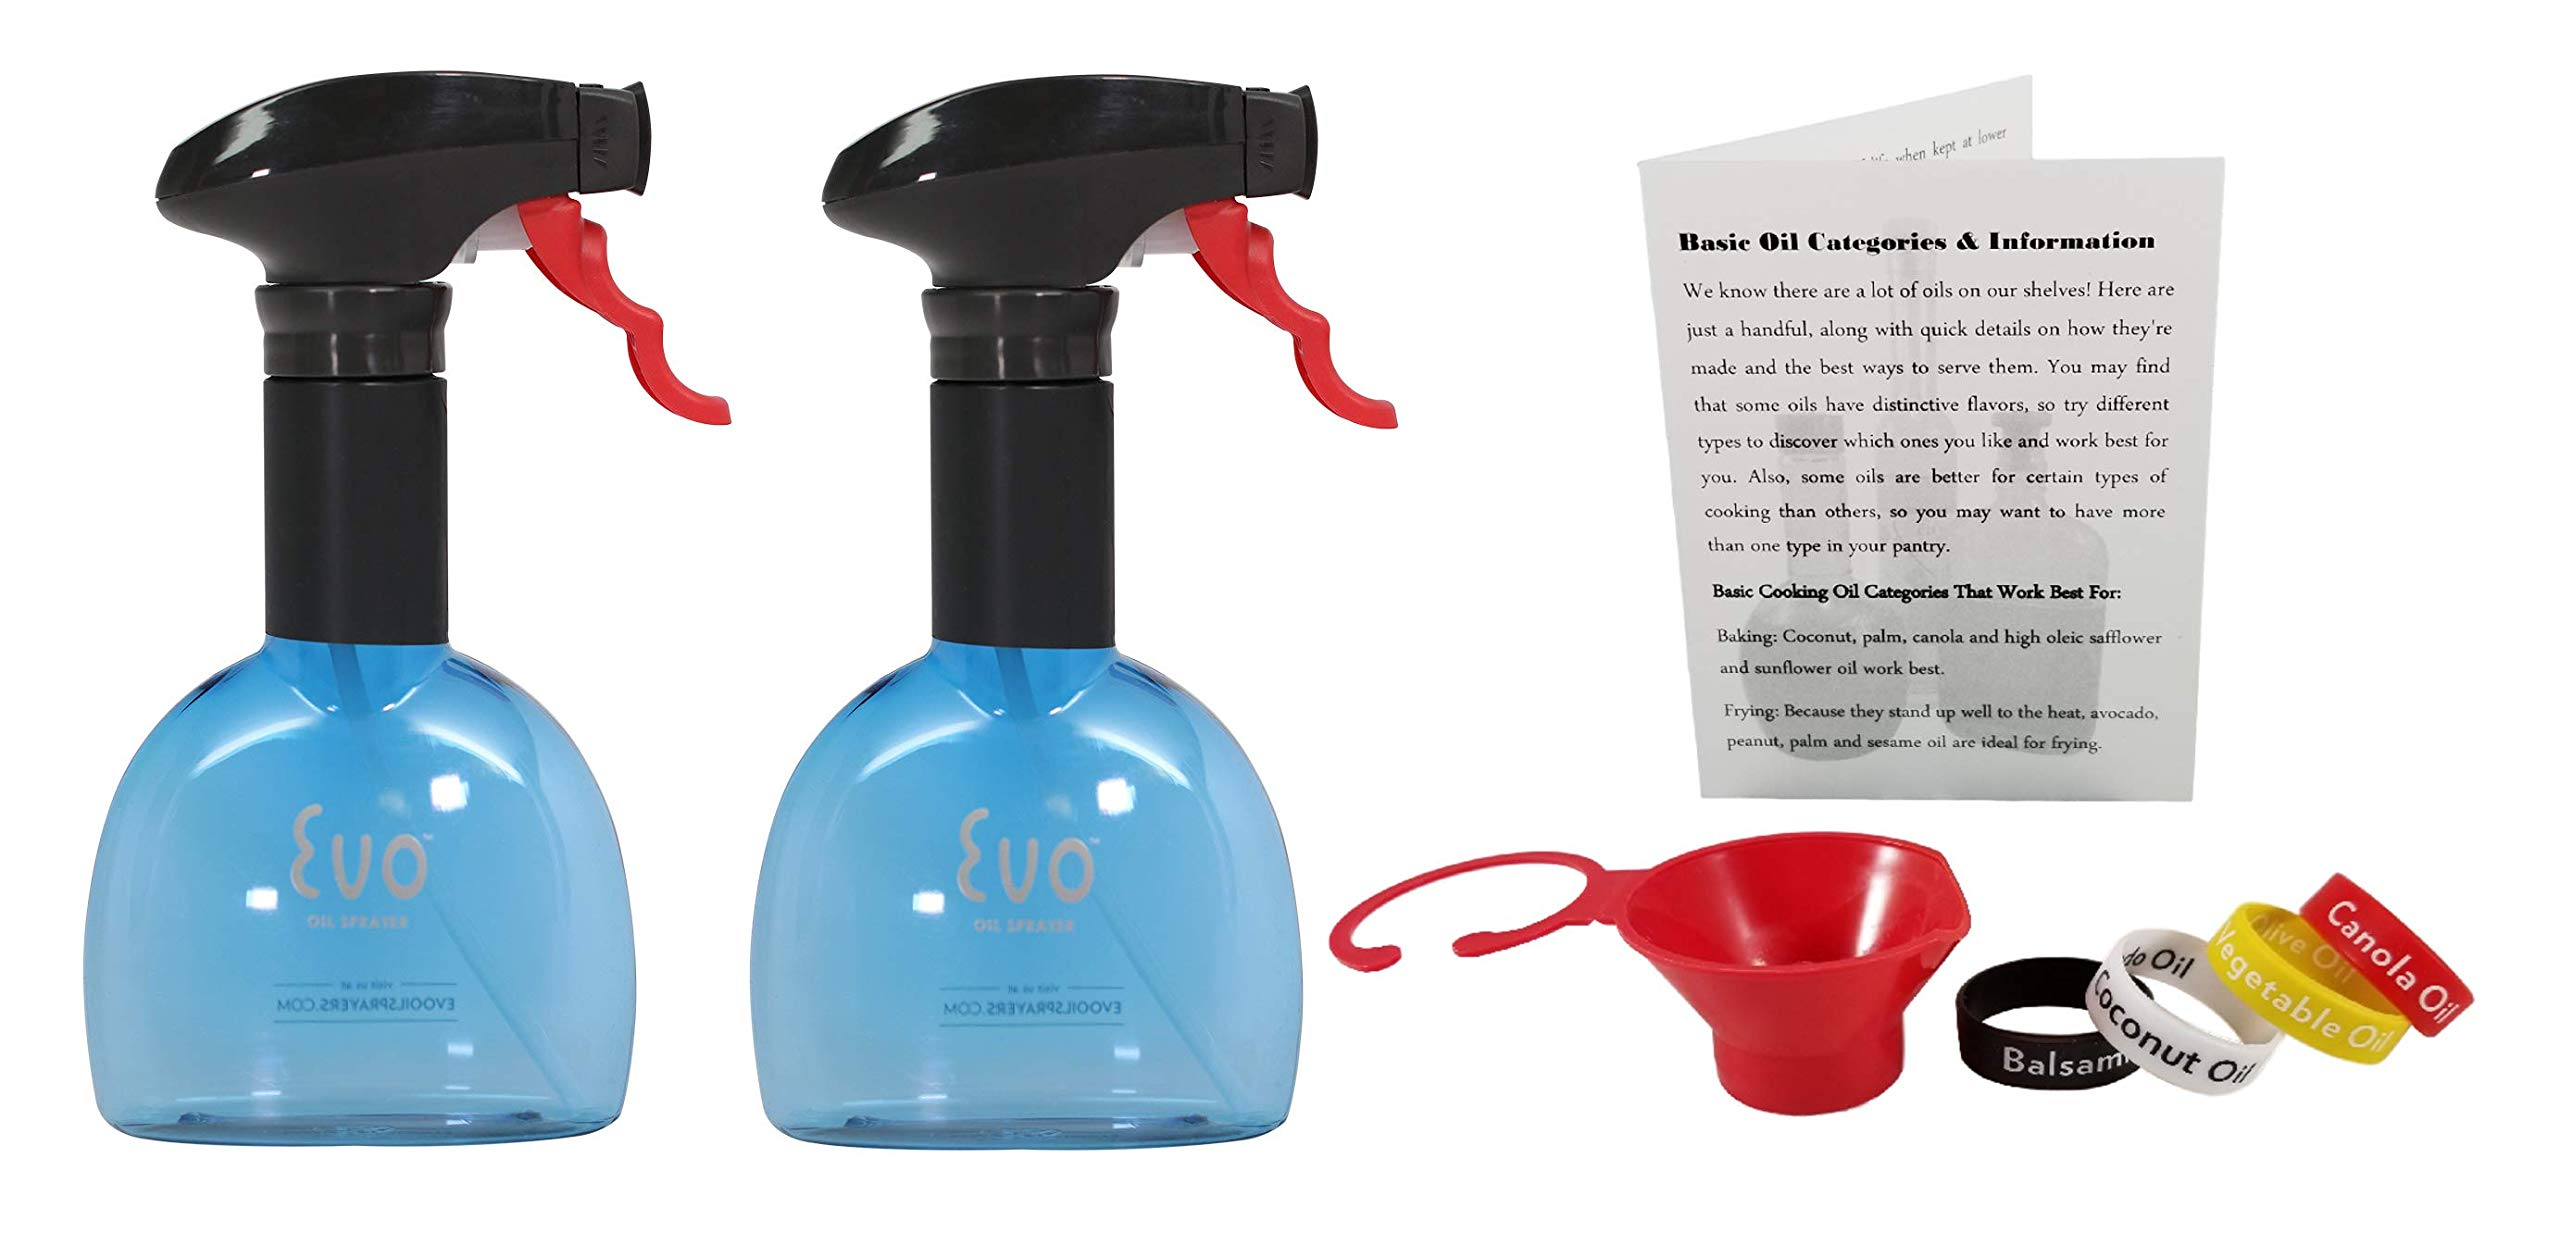 Evo Oil Sprayer Bottle for Cooking, Red, Purple or Blue, Set of 2, 8 Ounce Reusable Refillable Ellipsoid Spritzer, Comes with Funnel, Identification Bands and Informational Card (Blue) by EVO